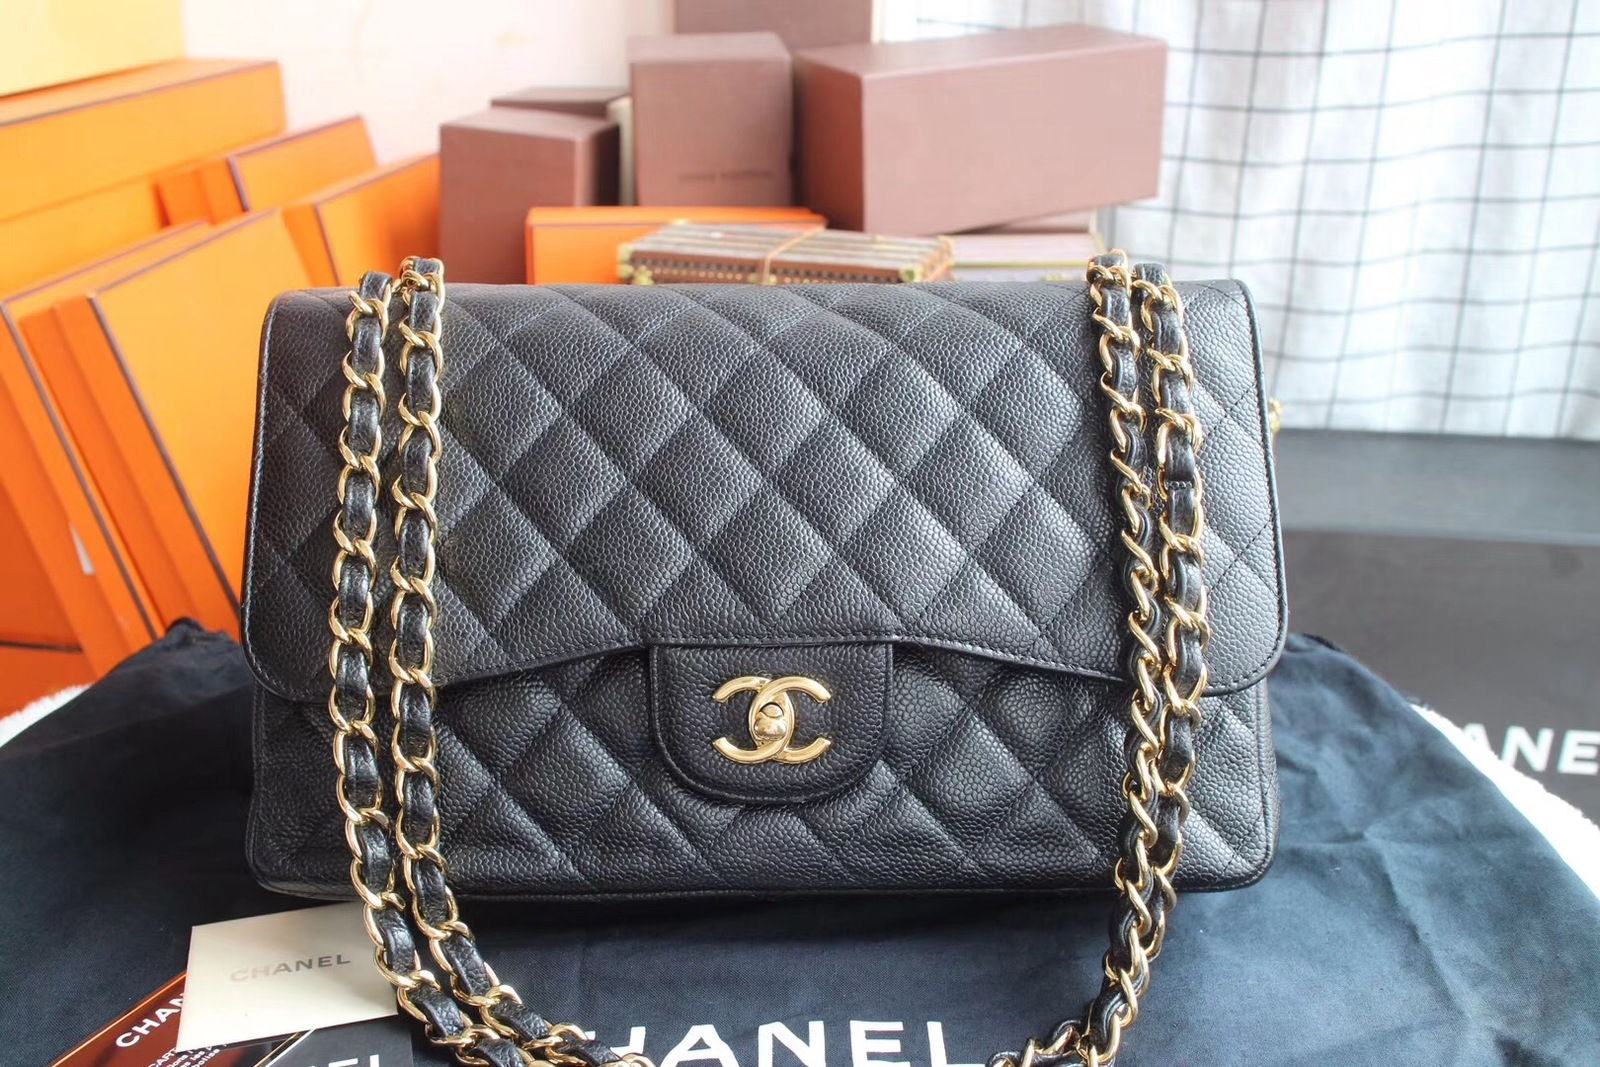 AUTHENTIC CHANEL BLACK QUILTED CAVIAR JUMBO CLASSIC DOUBLE FLAP BAG GHW